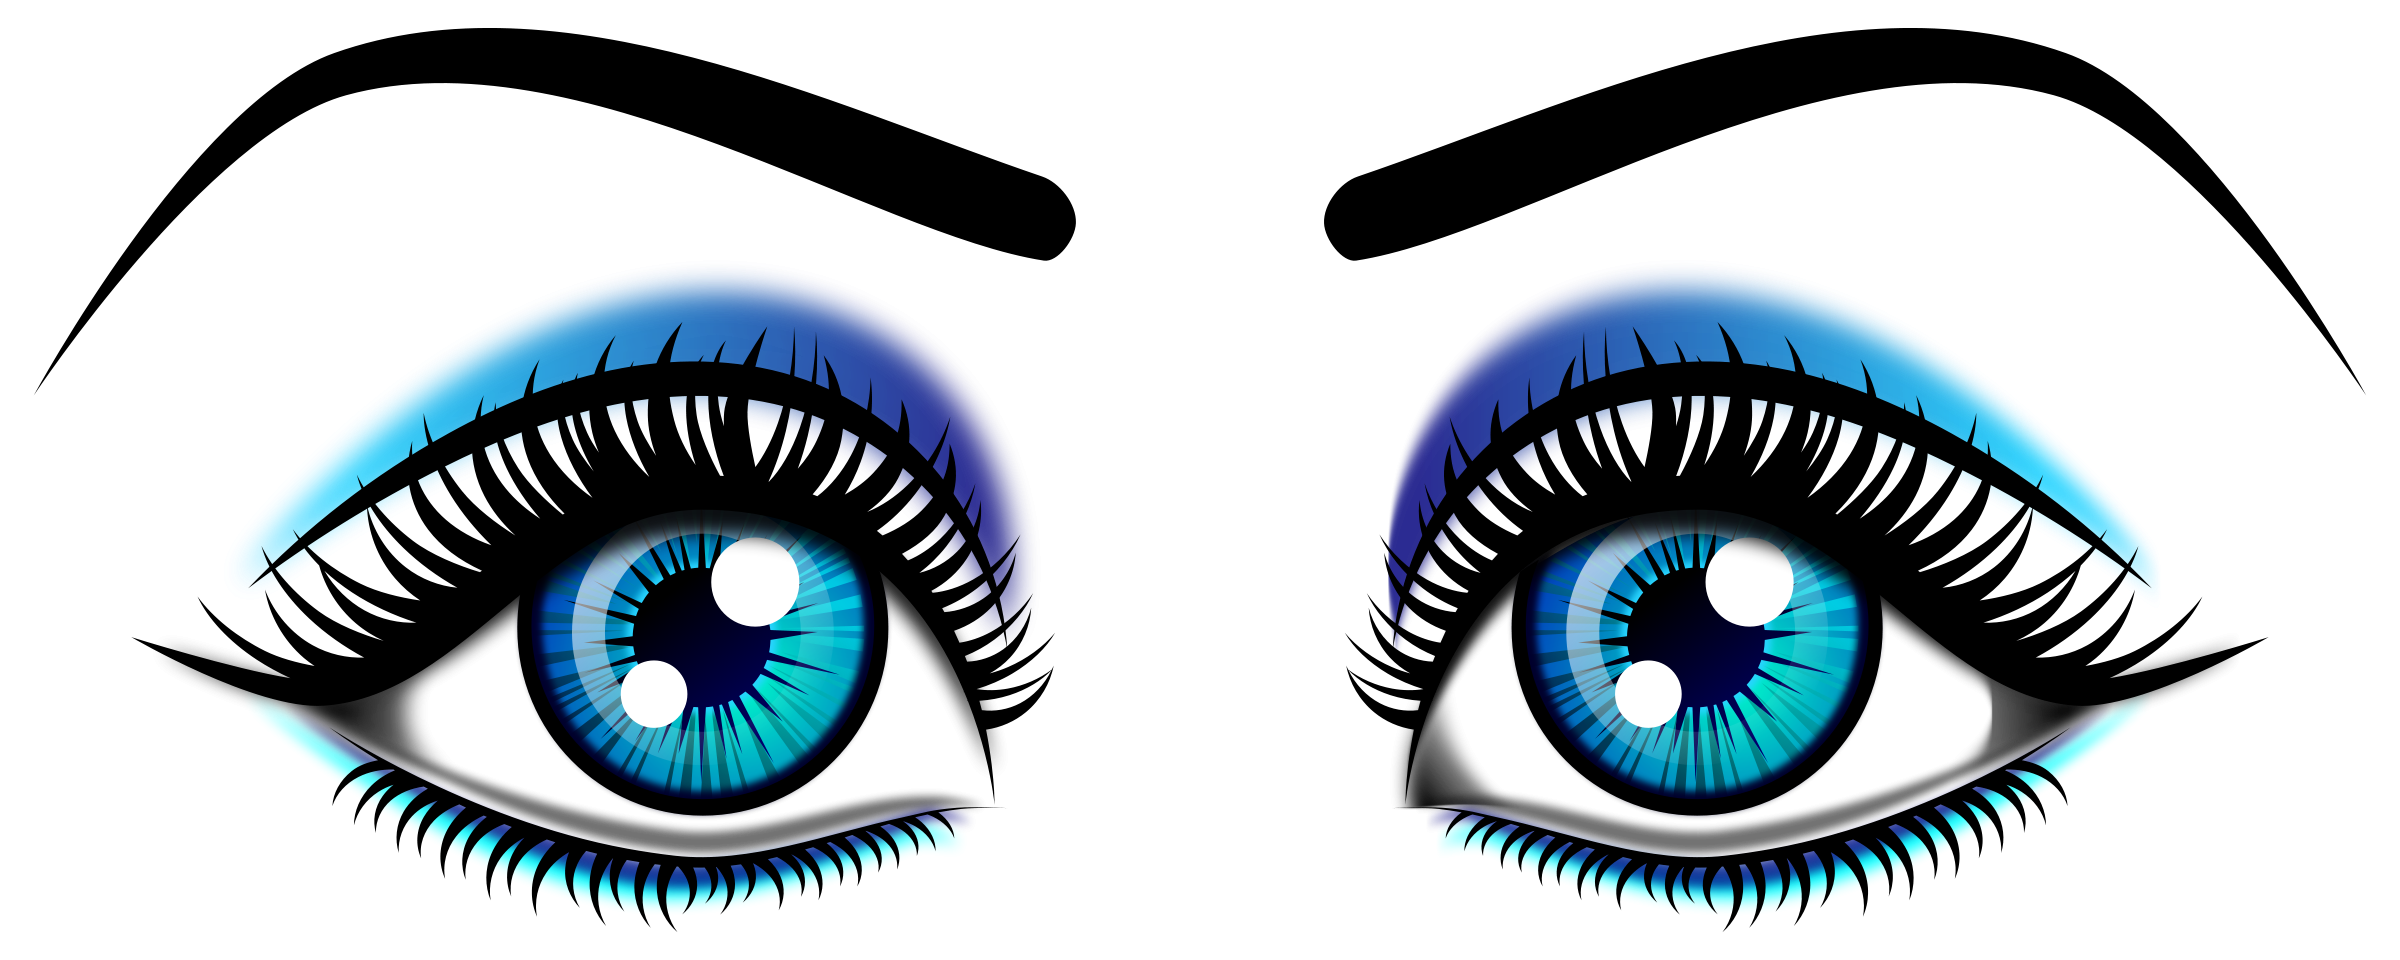 Eyes clipart human eye.  collection of for